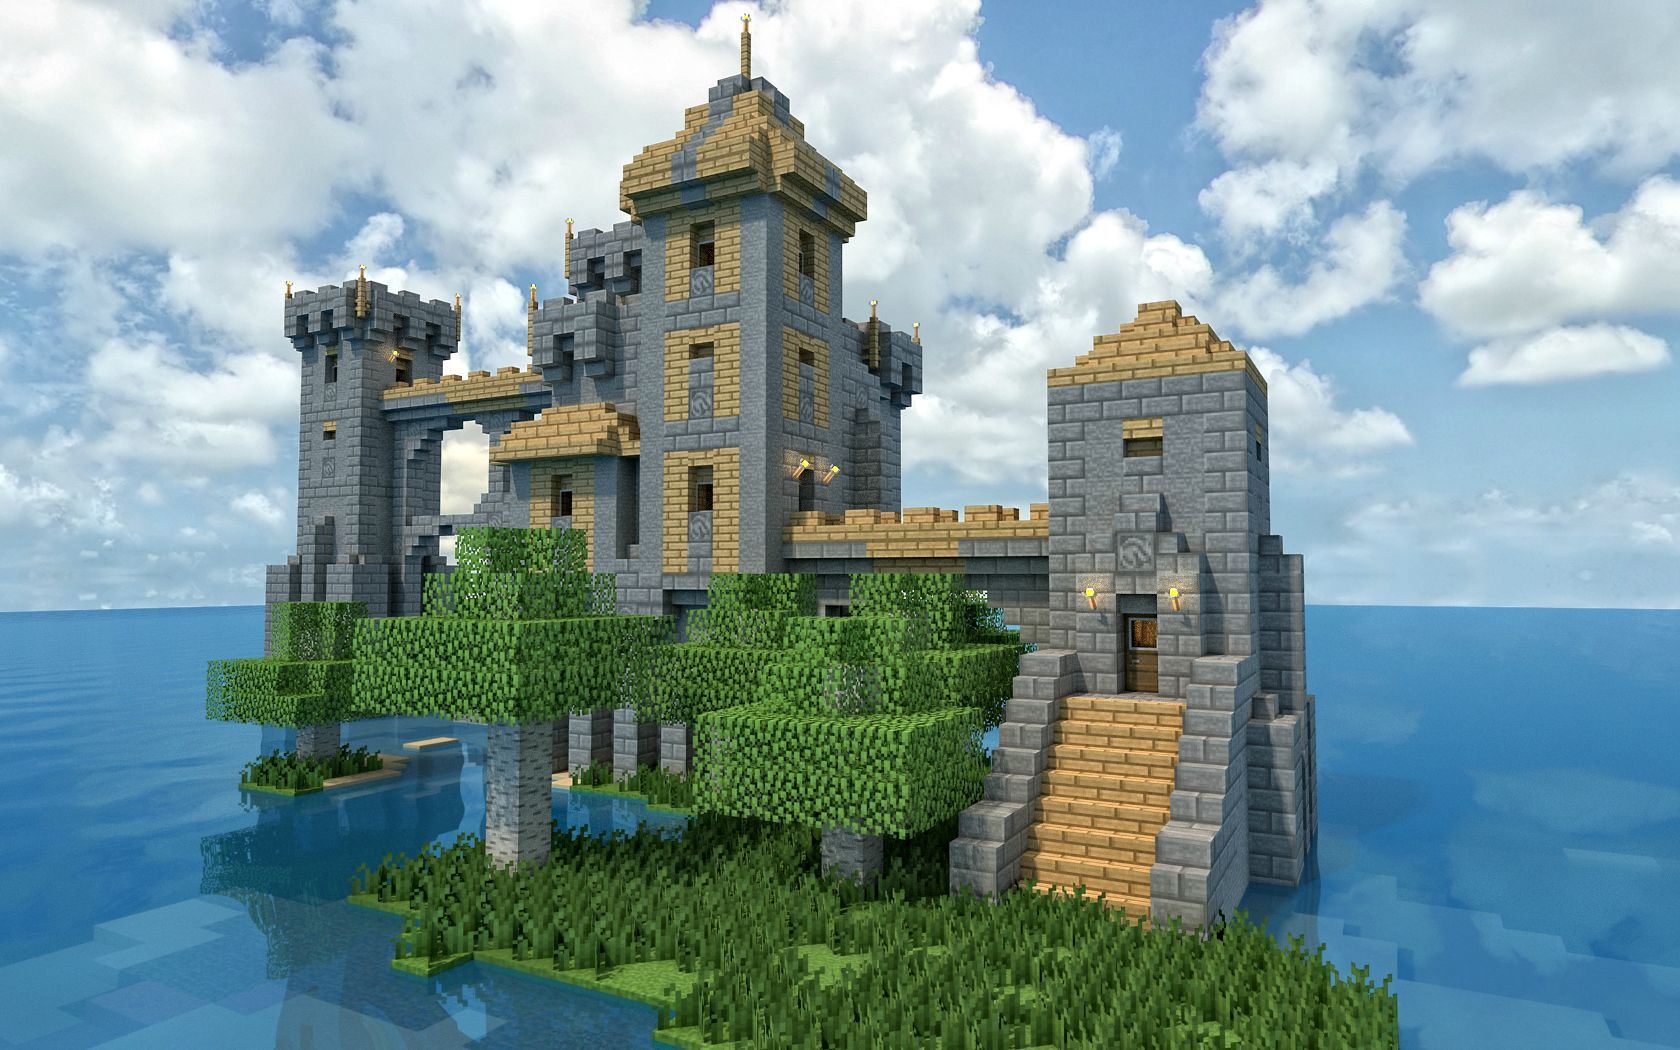 The Island Castle Wallpaper Image